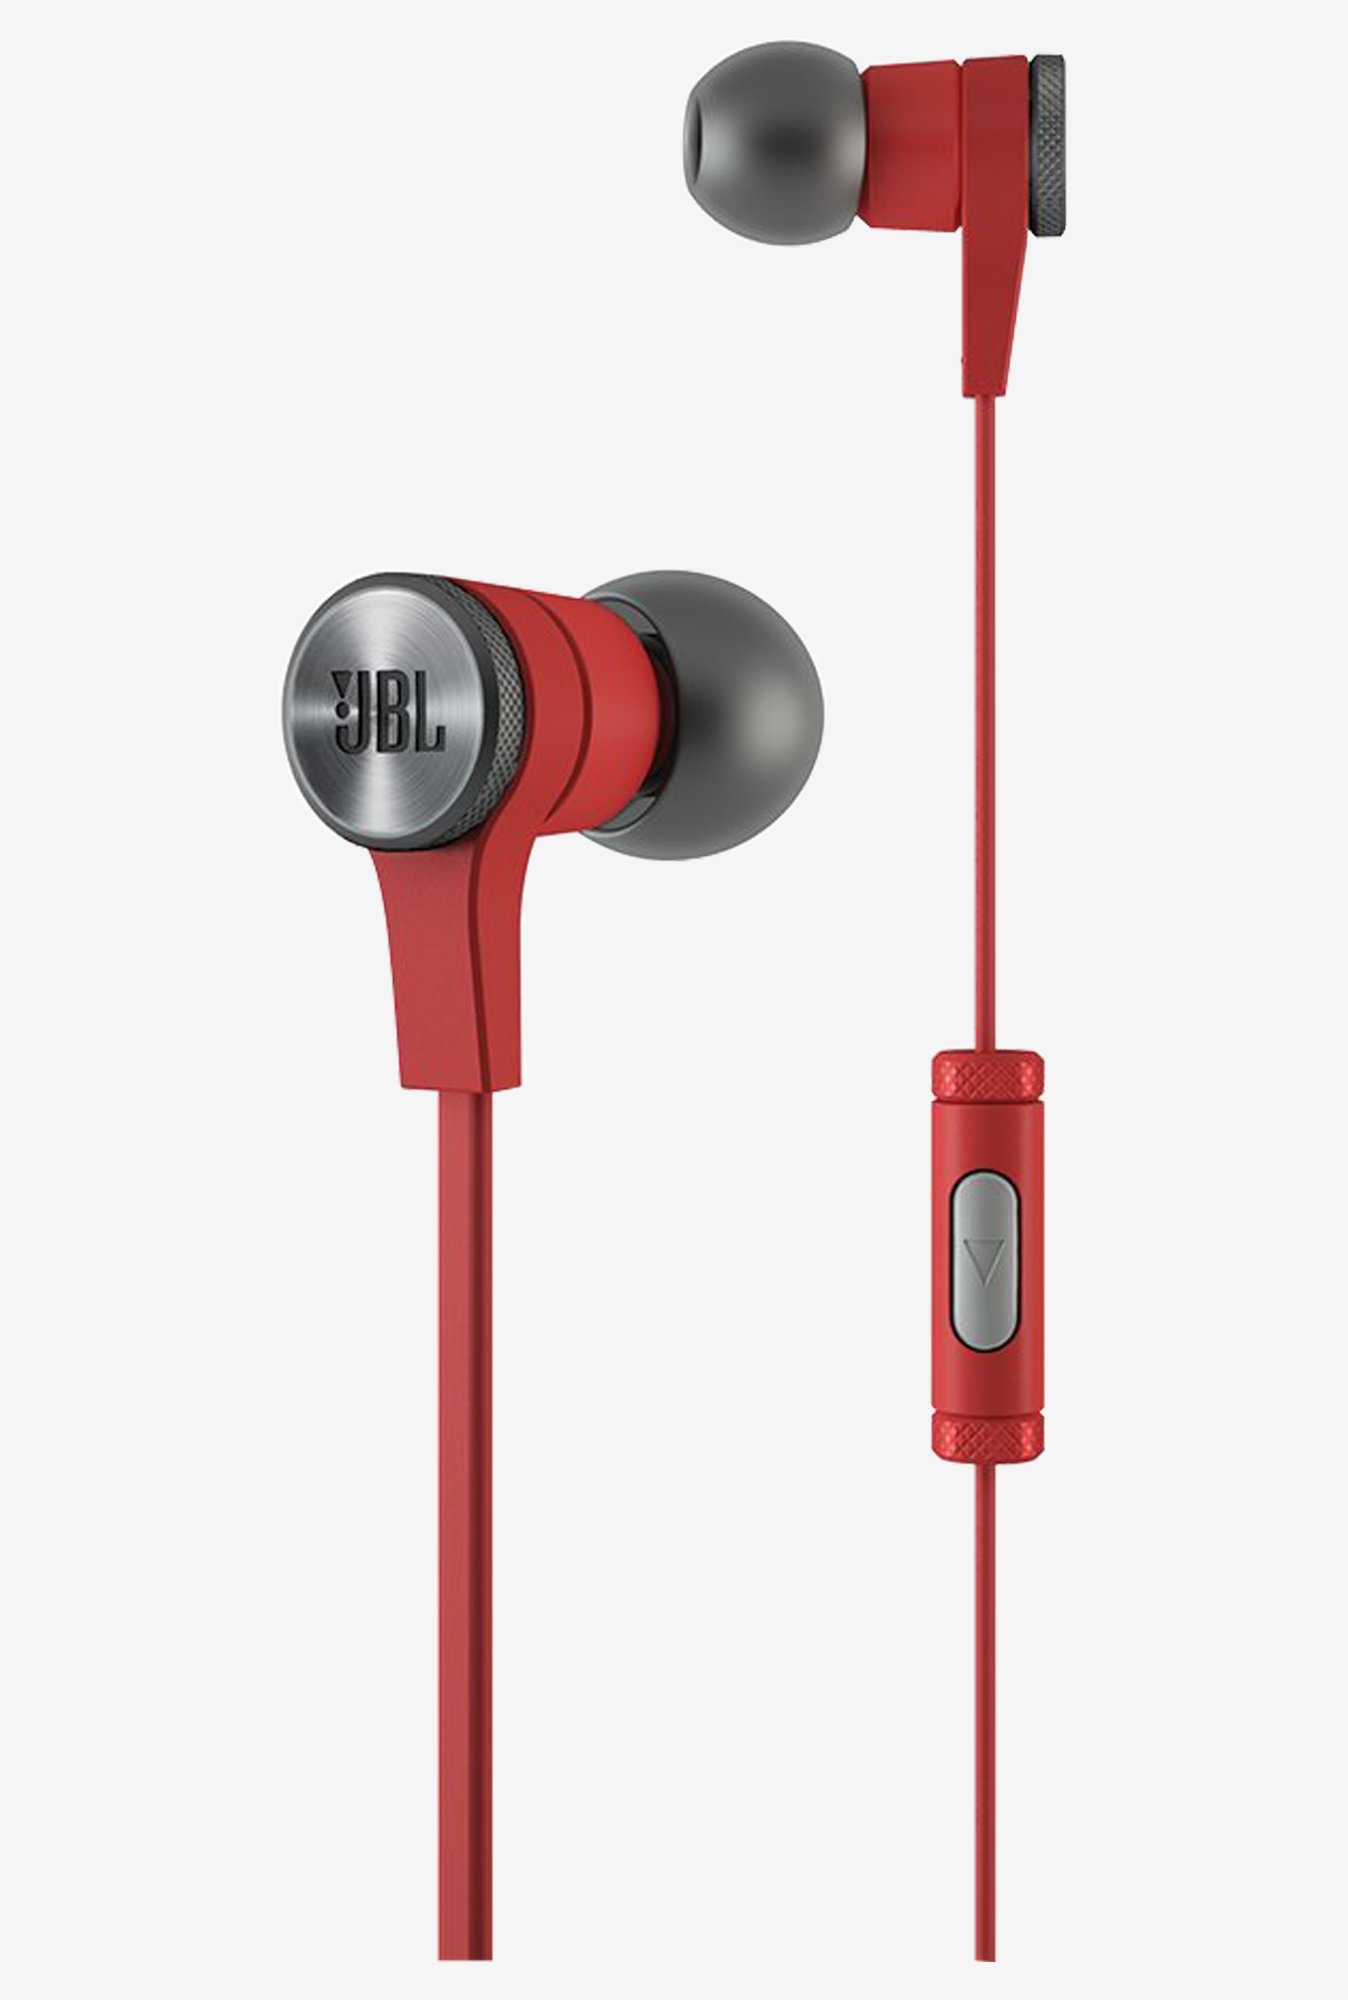 JBL Synchros E10 Stereo In the Ear Headphones With Mic (Red)